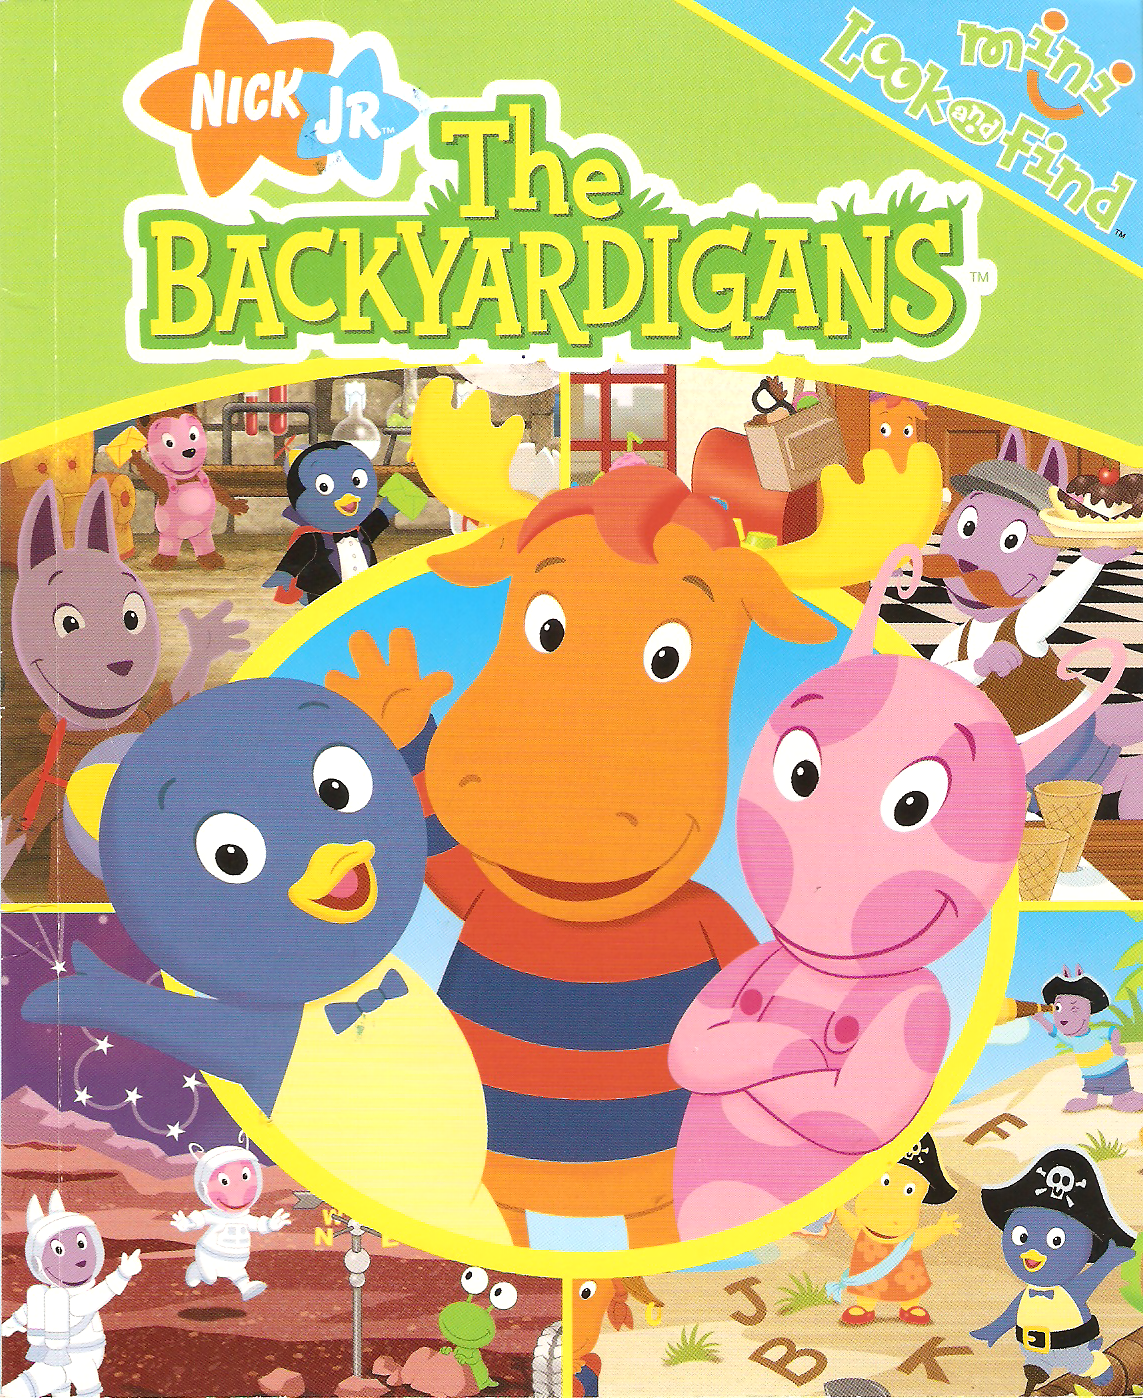 Backyardigans Mission to Mars DVD-Cover (page 2) - Pics ...